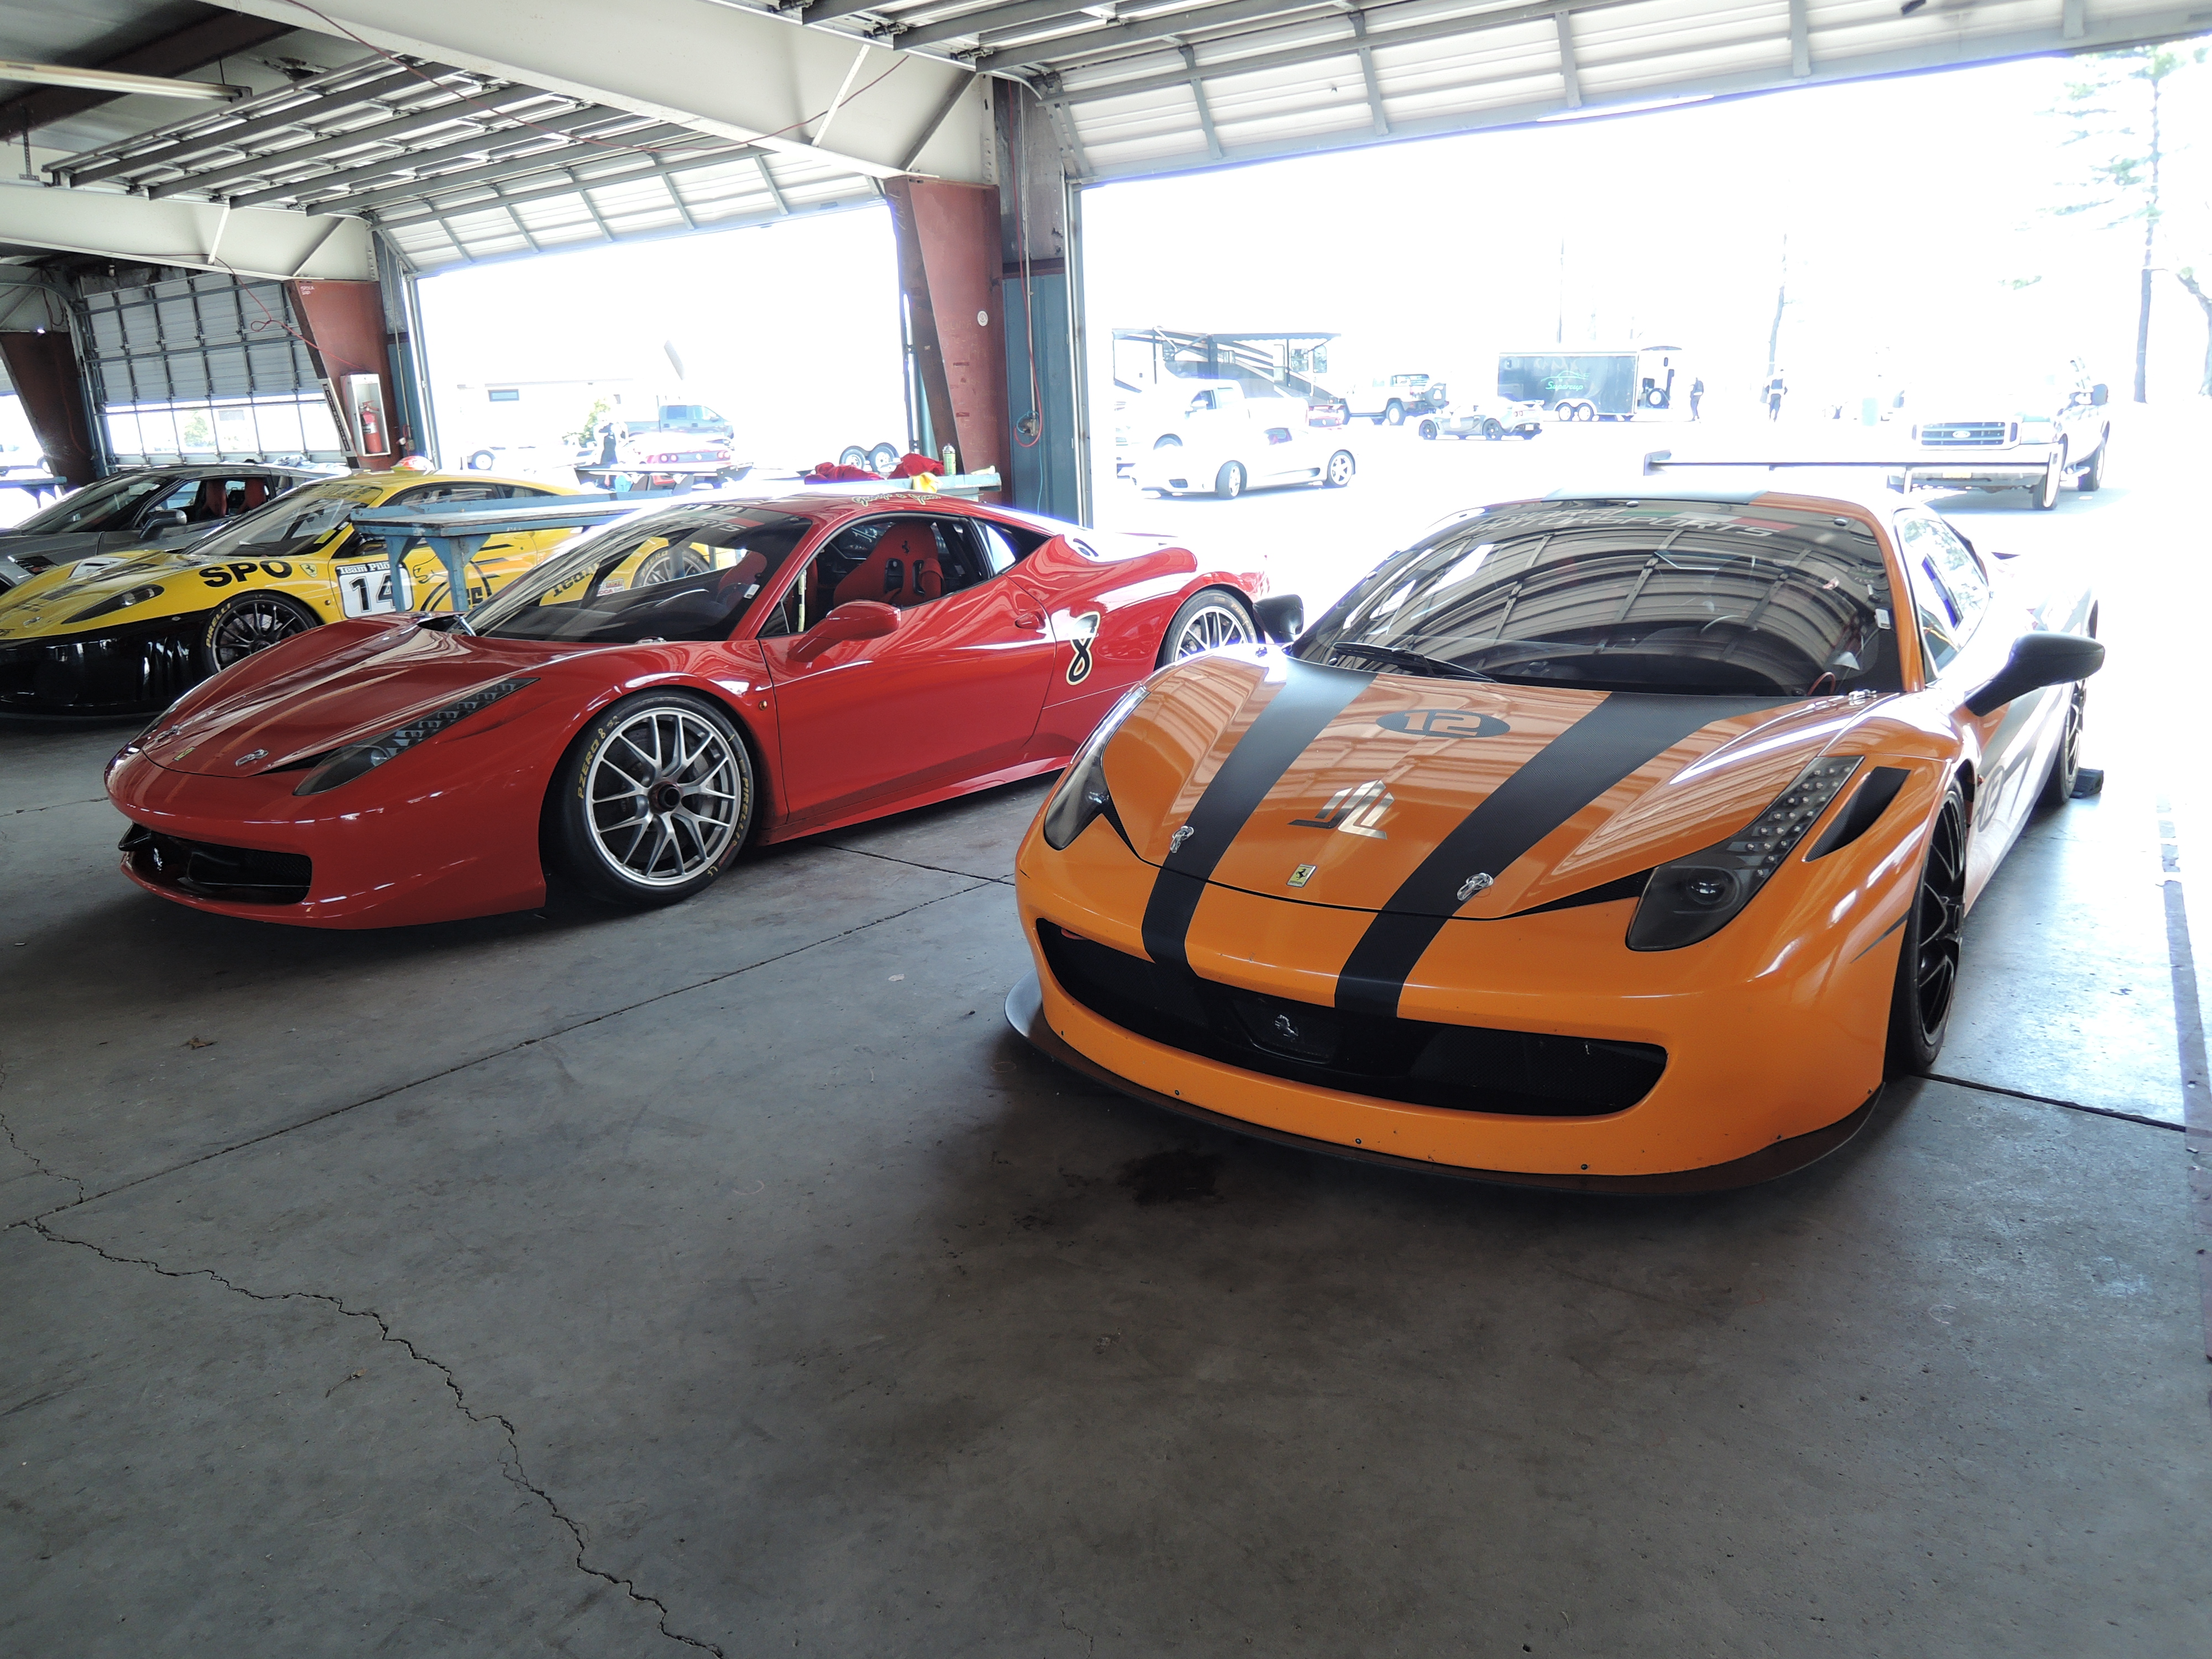 red and orange Ferrari 458 Challenge Cars - watkins gln